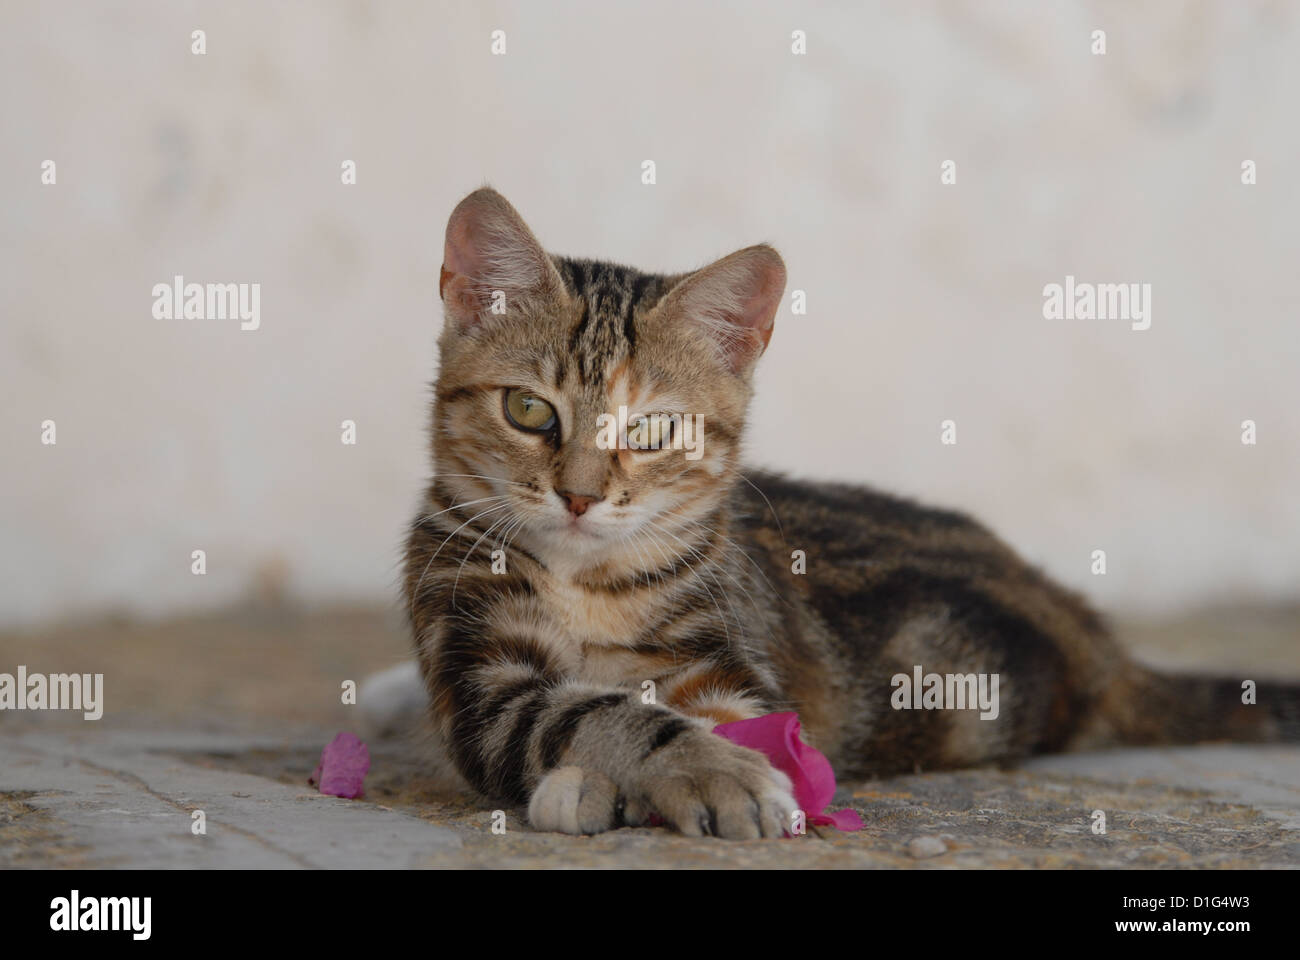 Black Tortie Tabby (Torbie) and White, is lying on a rocky step near by a blossom of Bougainvillea, Greece, Dodecanese - Stock Image